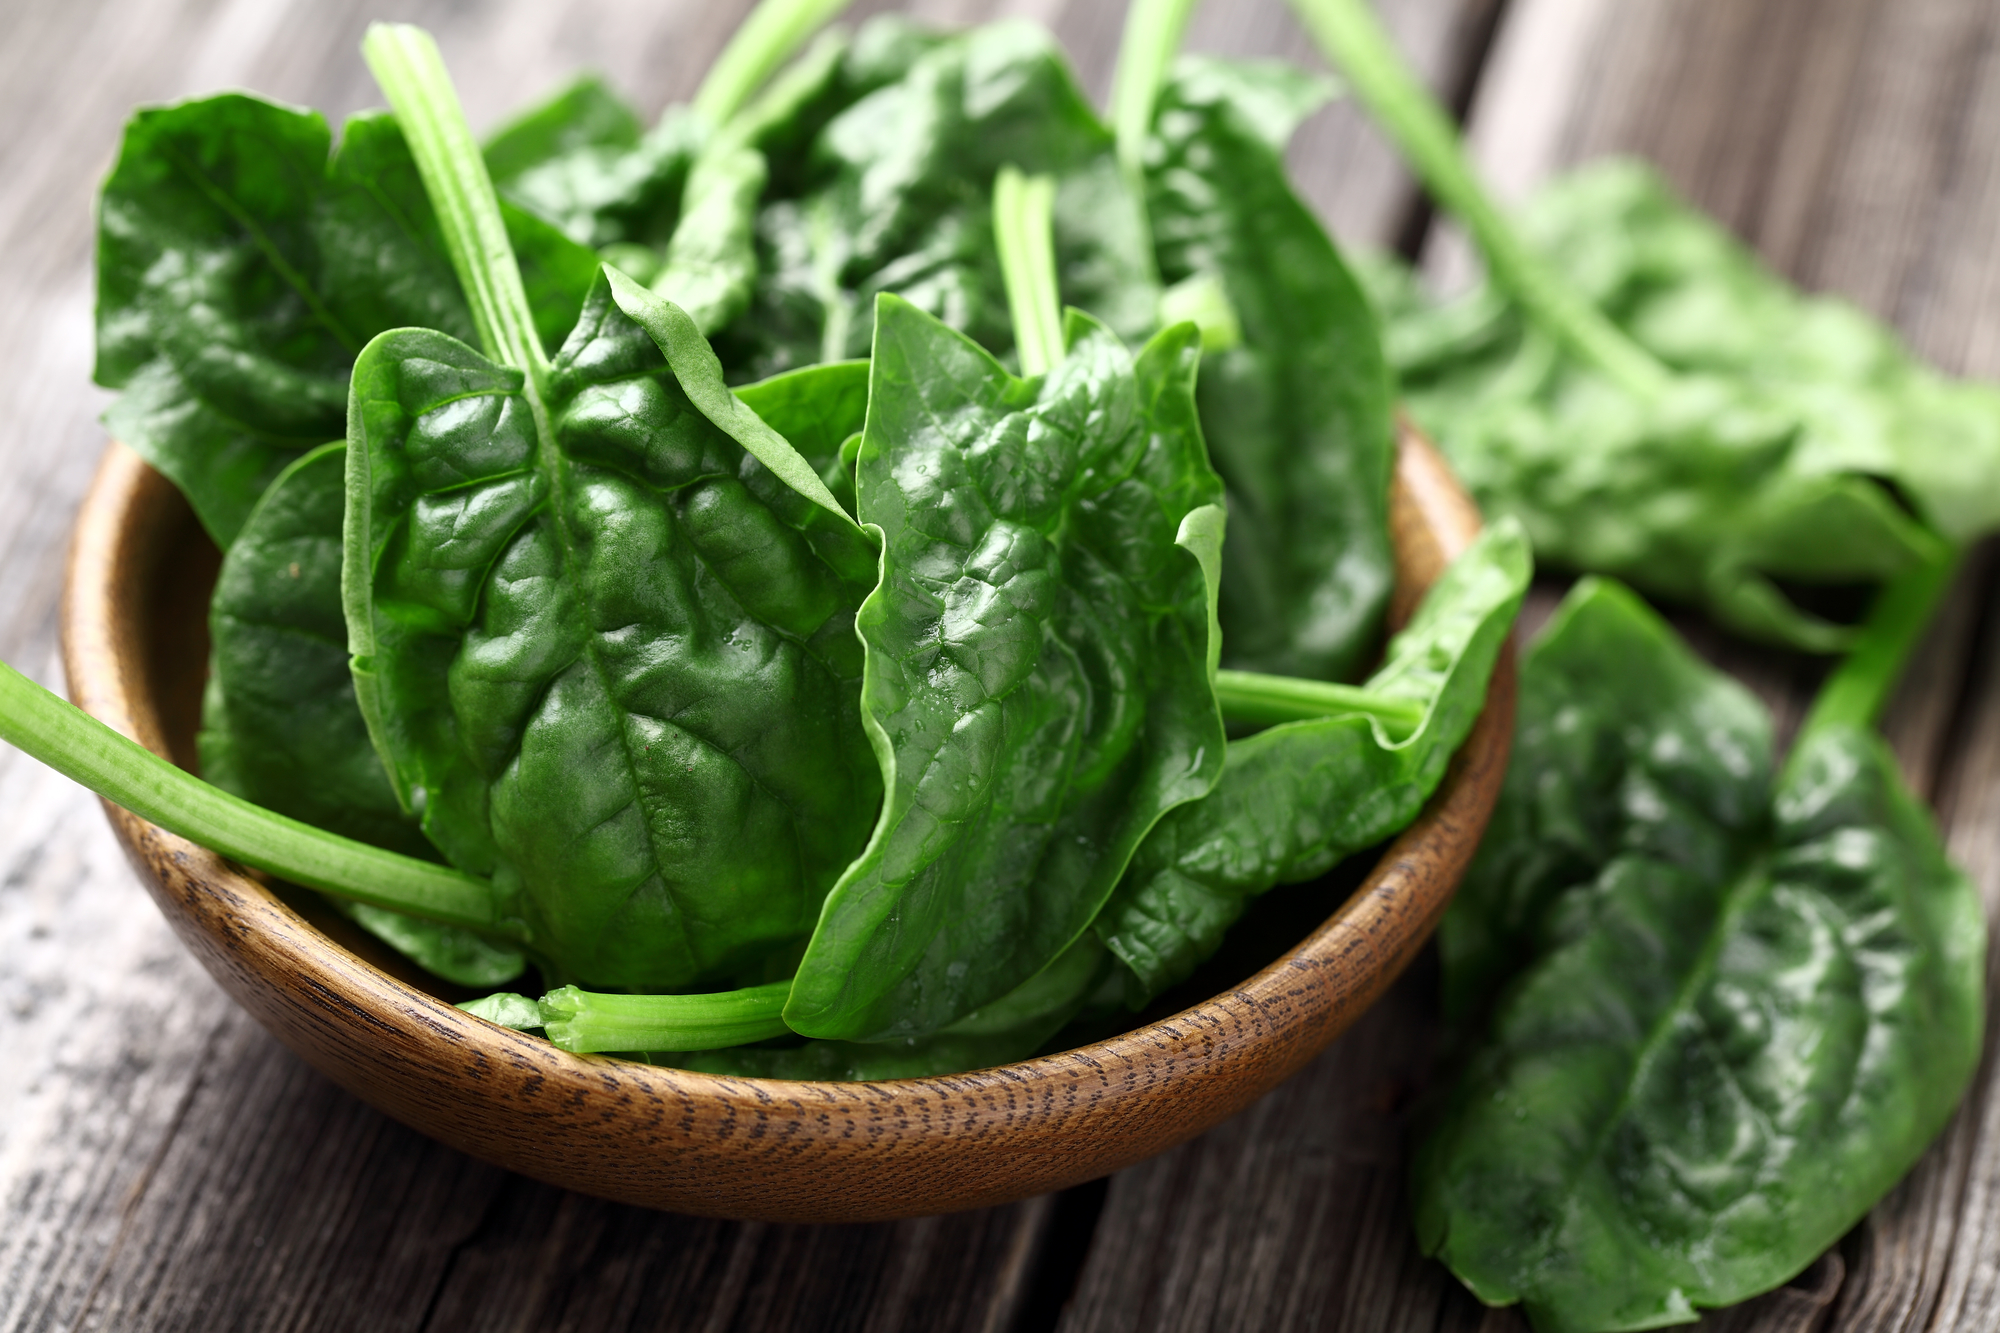 Spinach leaves in a wooden bowl on a table